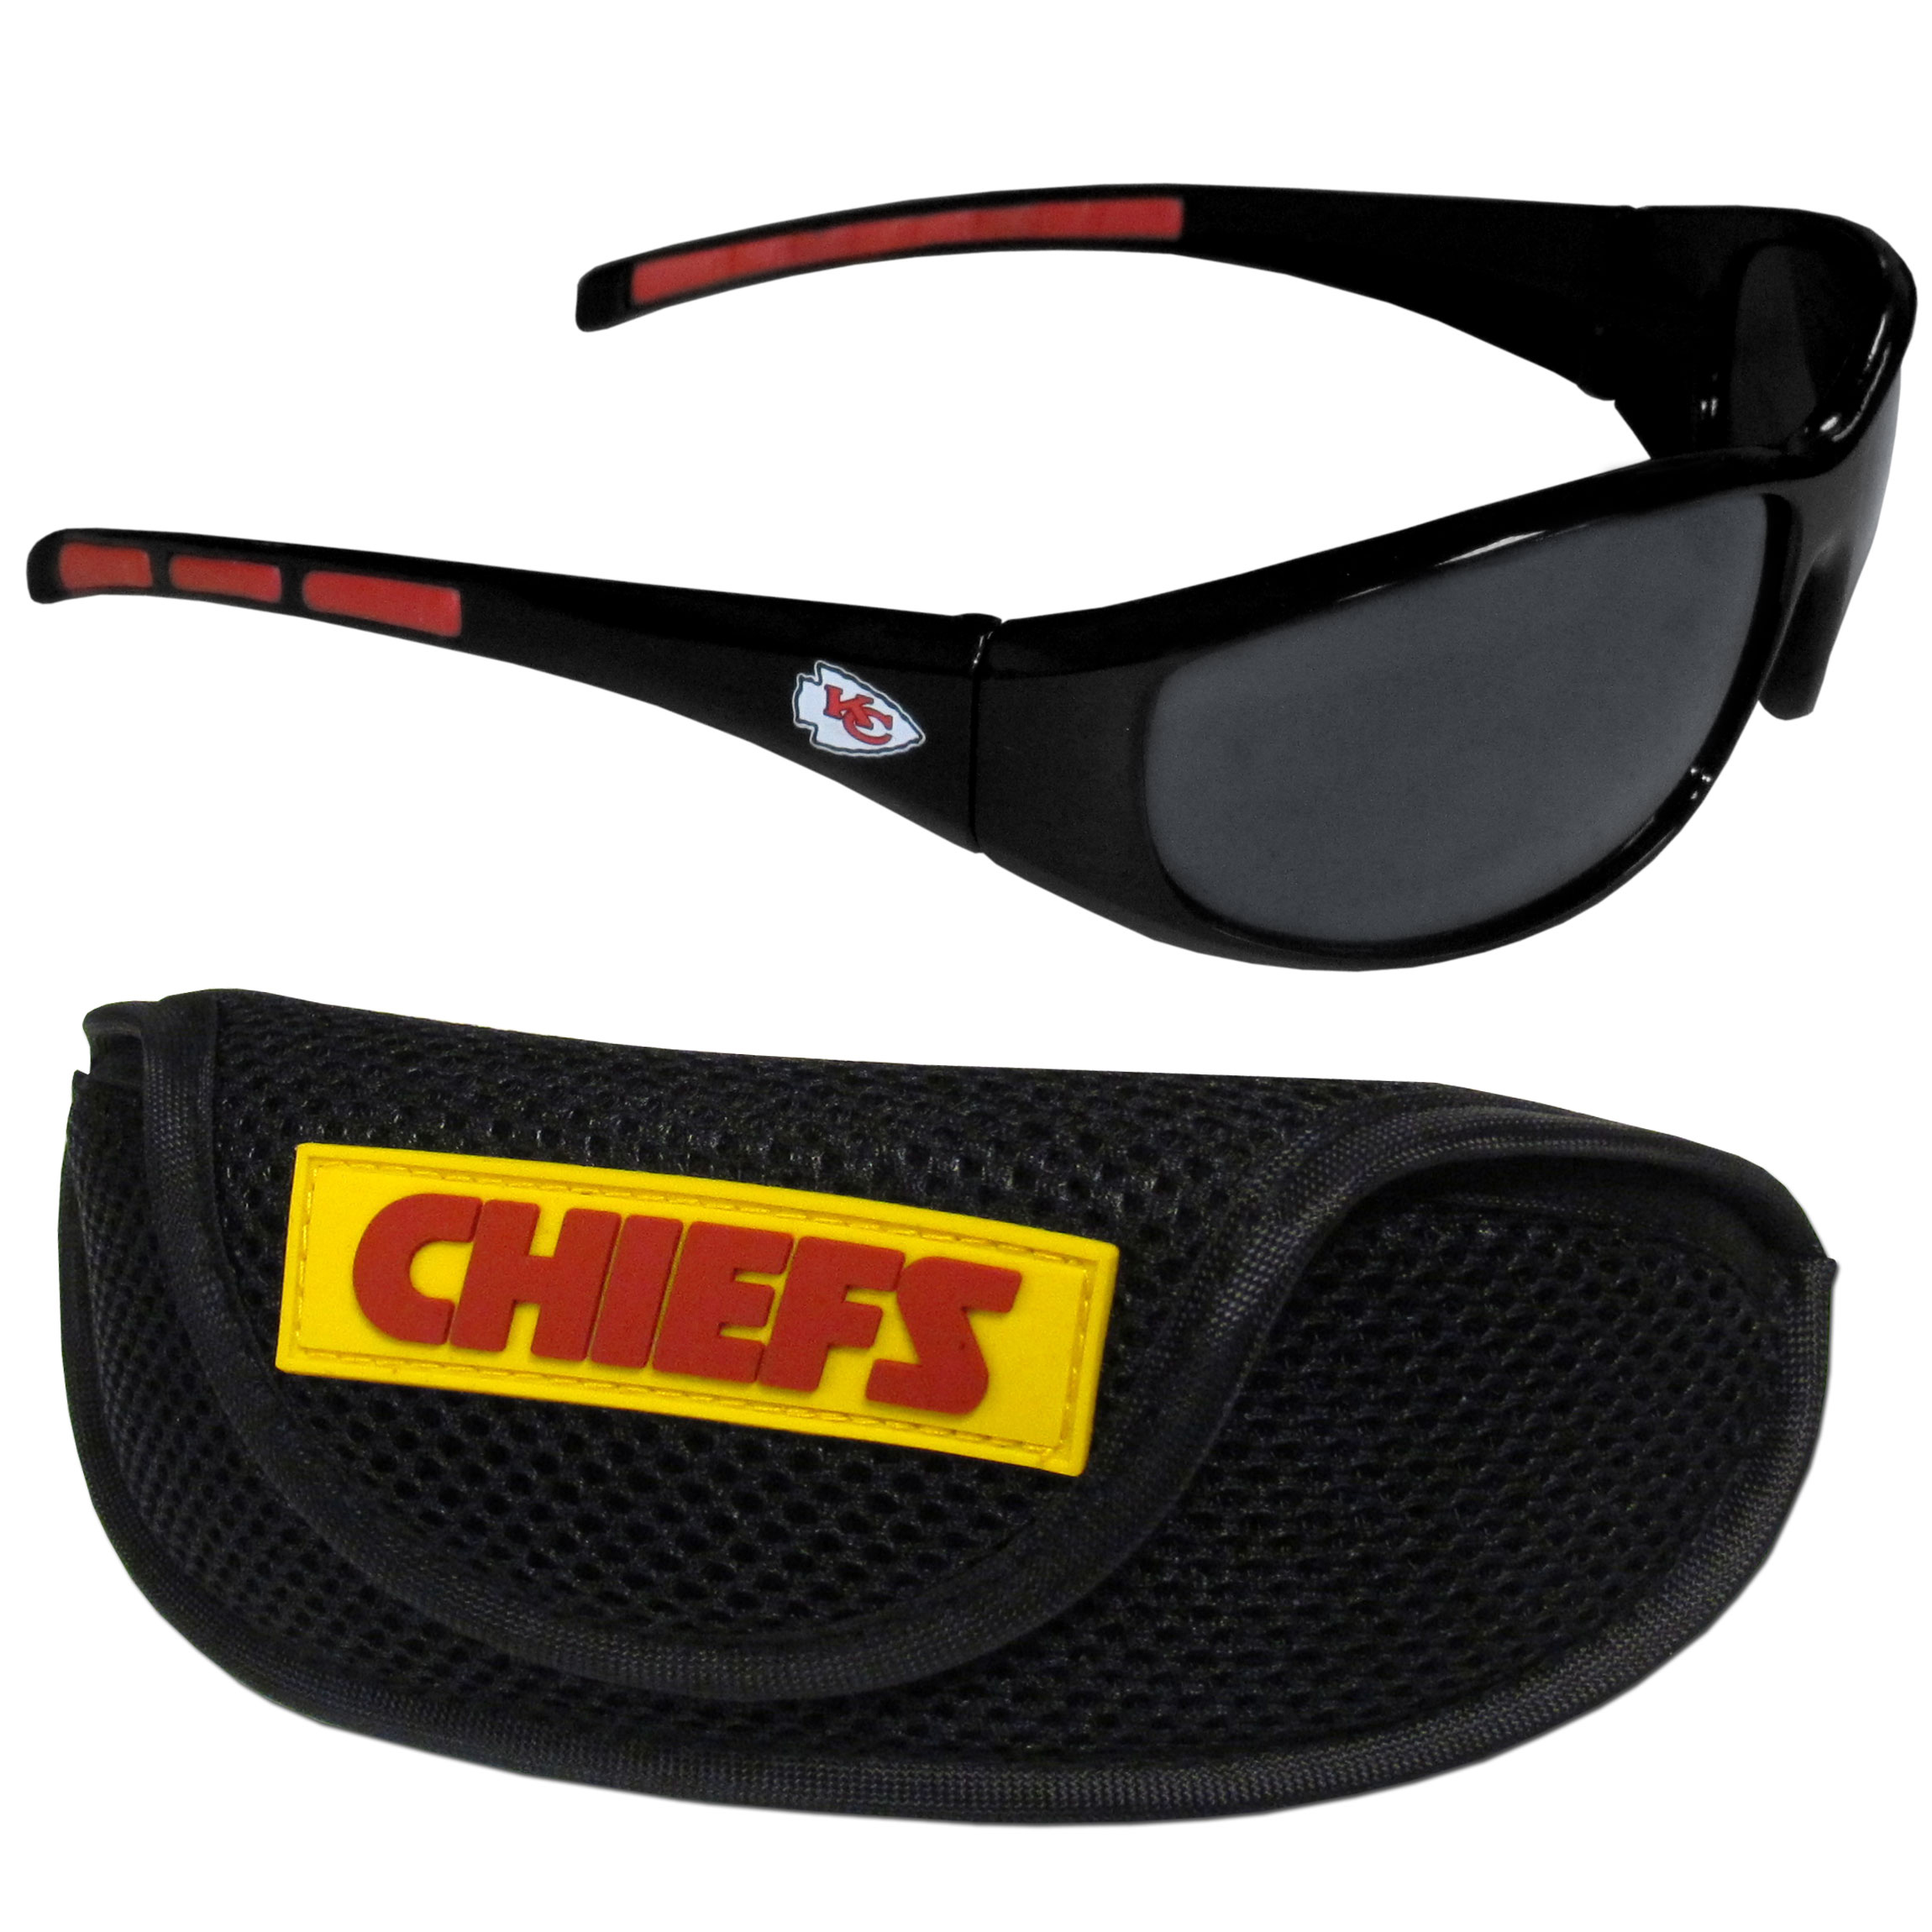 Kansas City Chiefs Wrap Sunglass and Case Set - This great set includes a high quality pair of Kansas City Chiefs wrap sunglasses and sport carrying case.